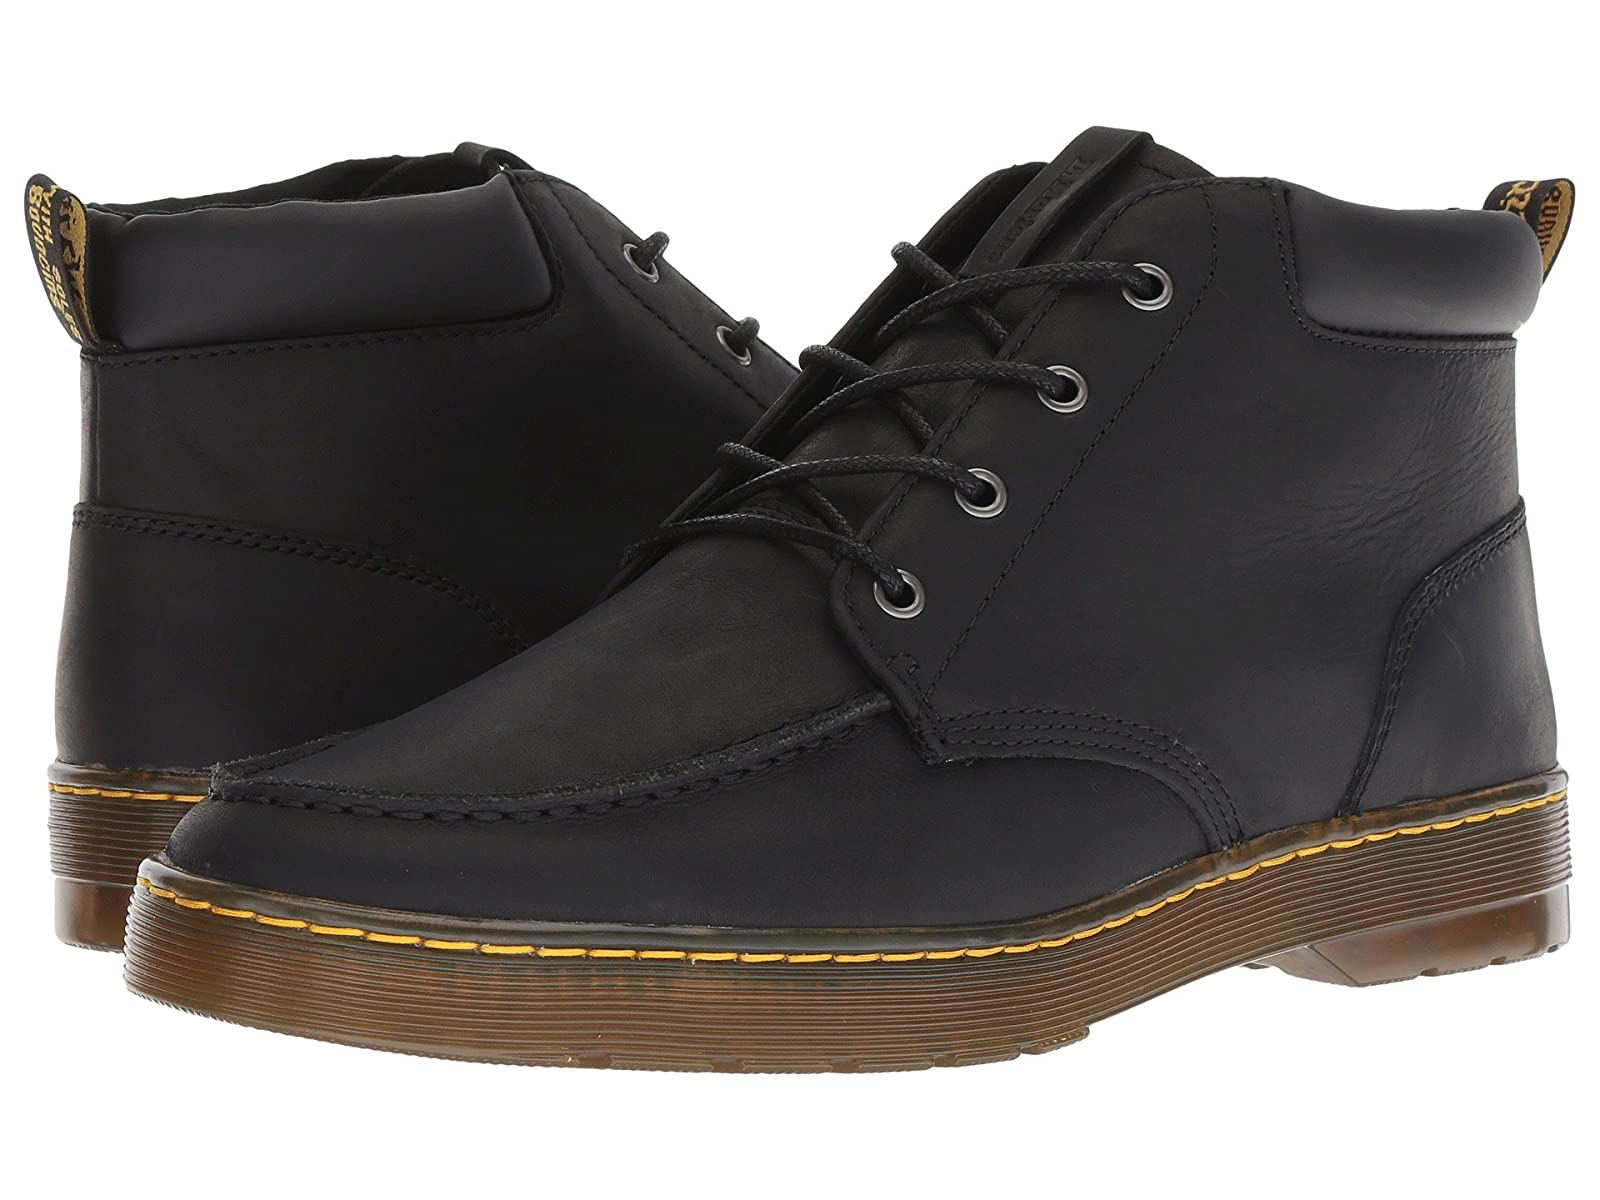 Dr. Martens Wilmot ChukkaAffordable and distinctive shoes